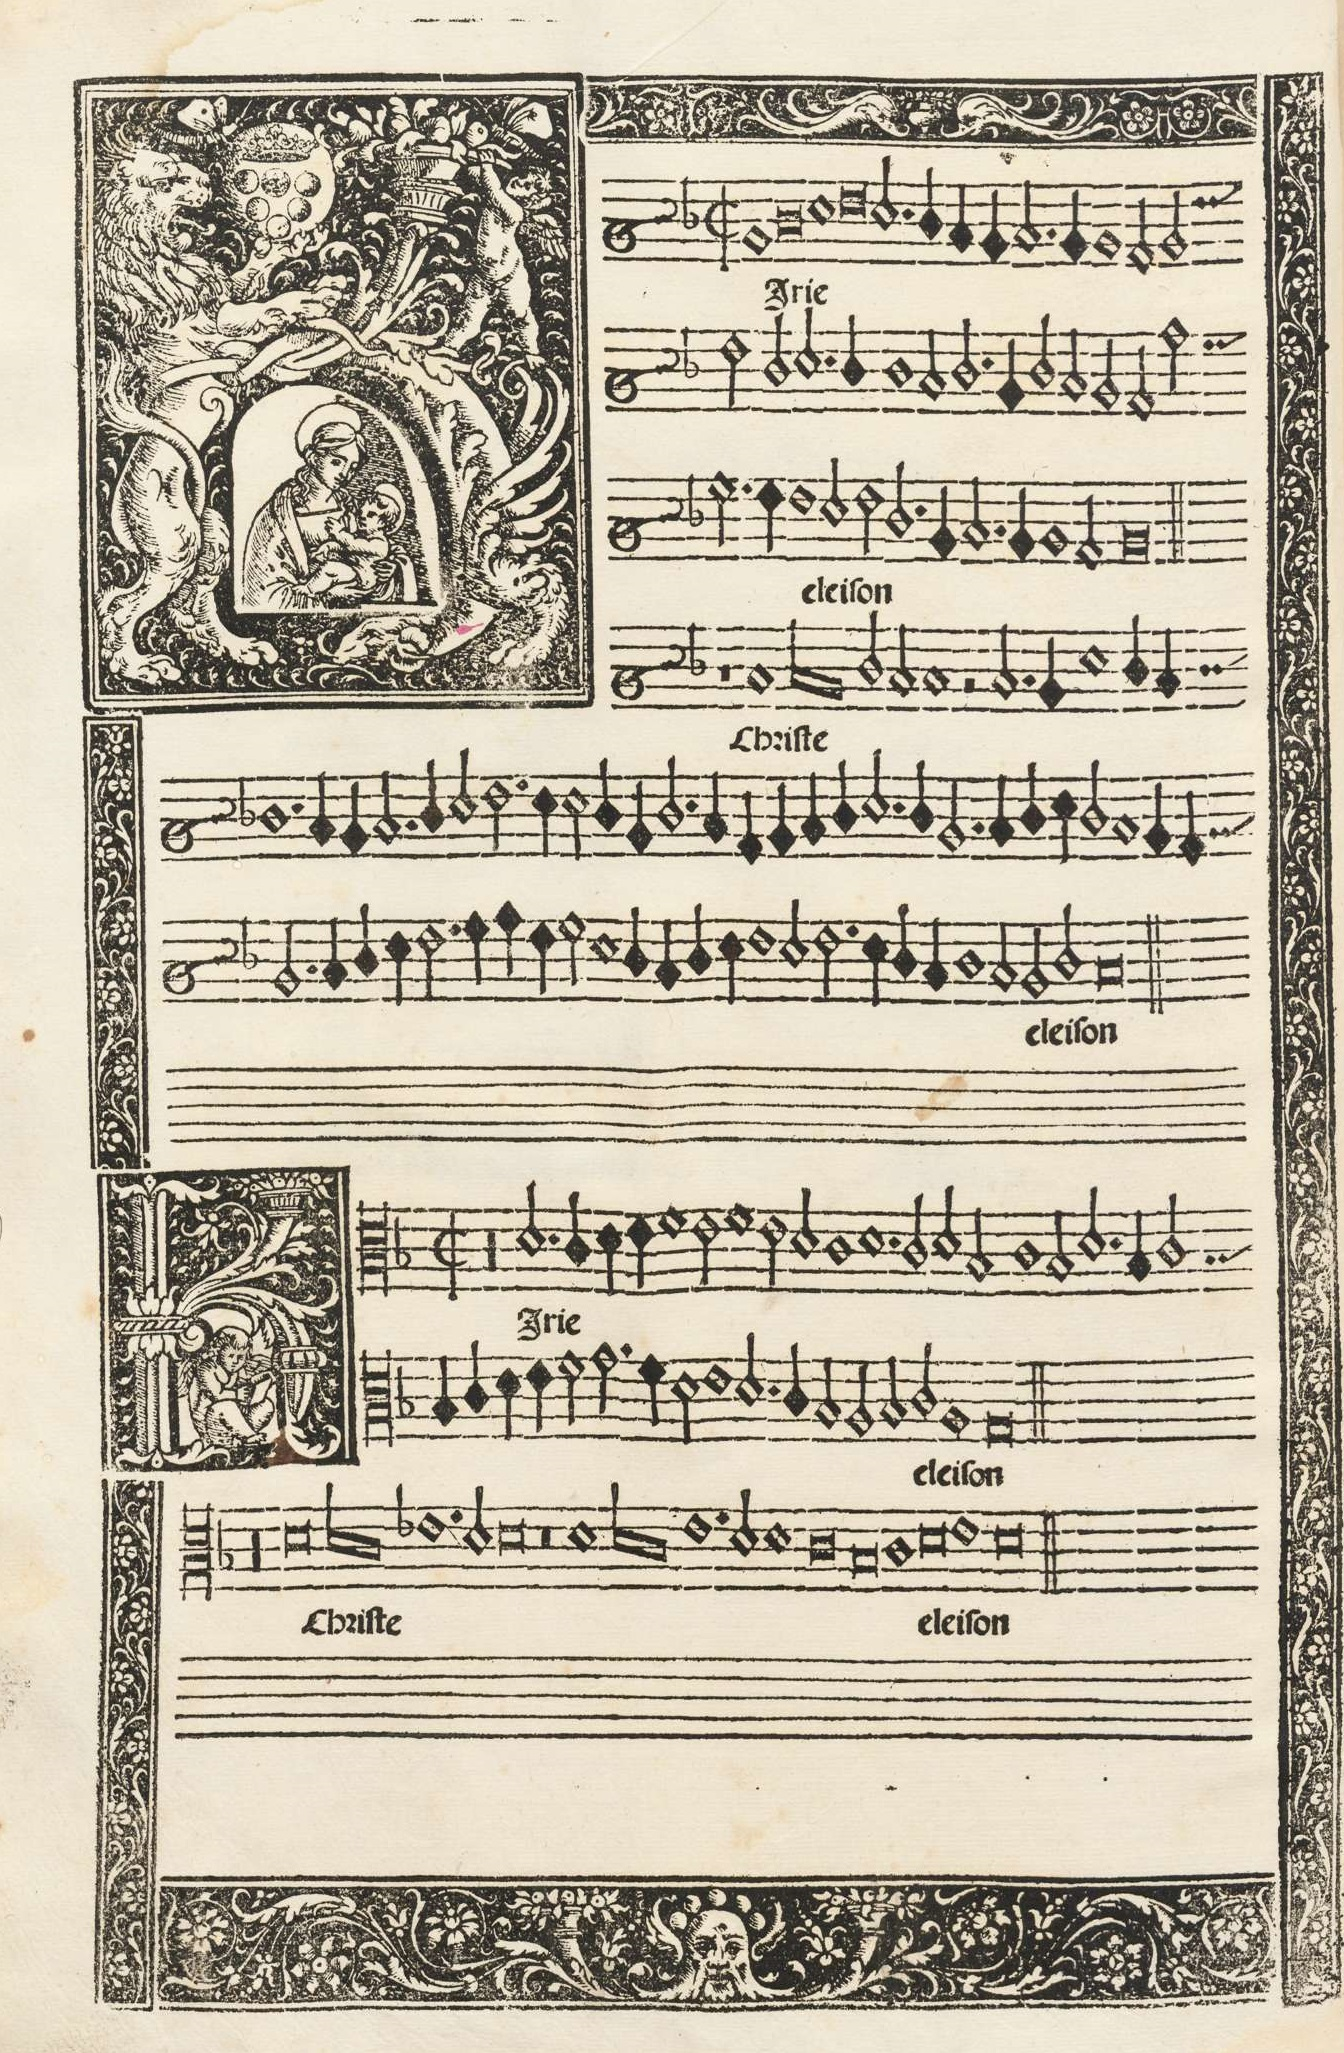 First page of music from Dorico's edition, featuring an illuminated K with the Virgin and child as well as an elaborate K in the next verse.